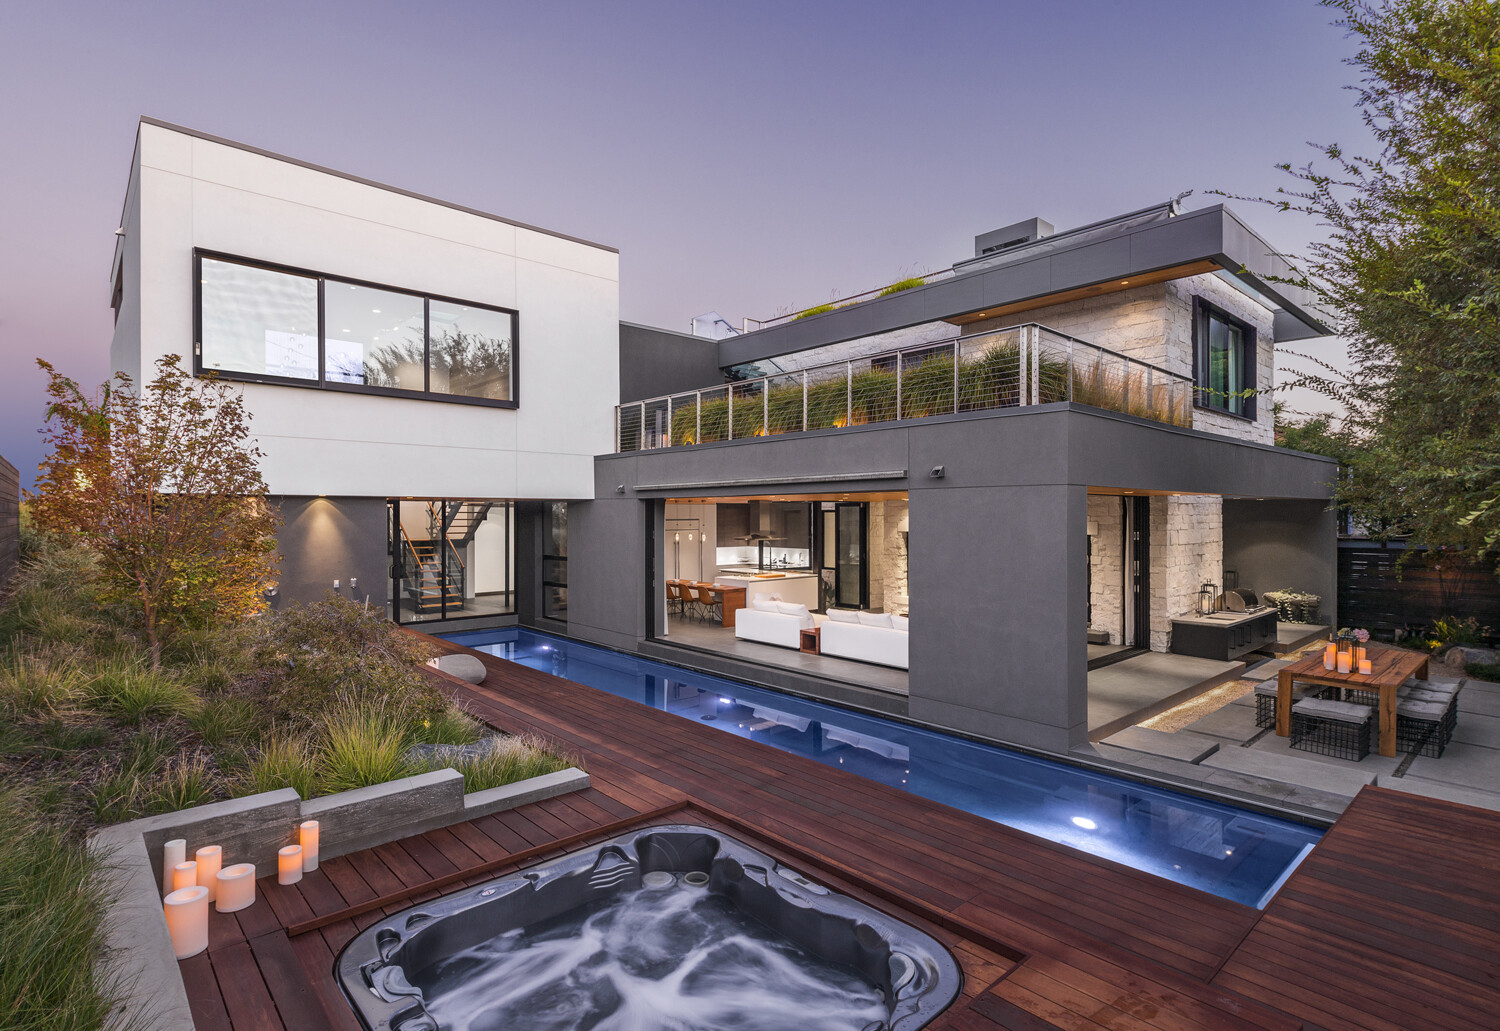 Acacia House: Private Residence with a Lounge Arranged on the Rooftop